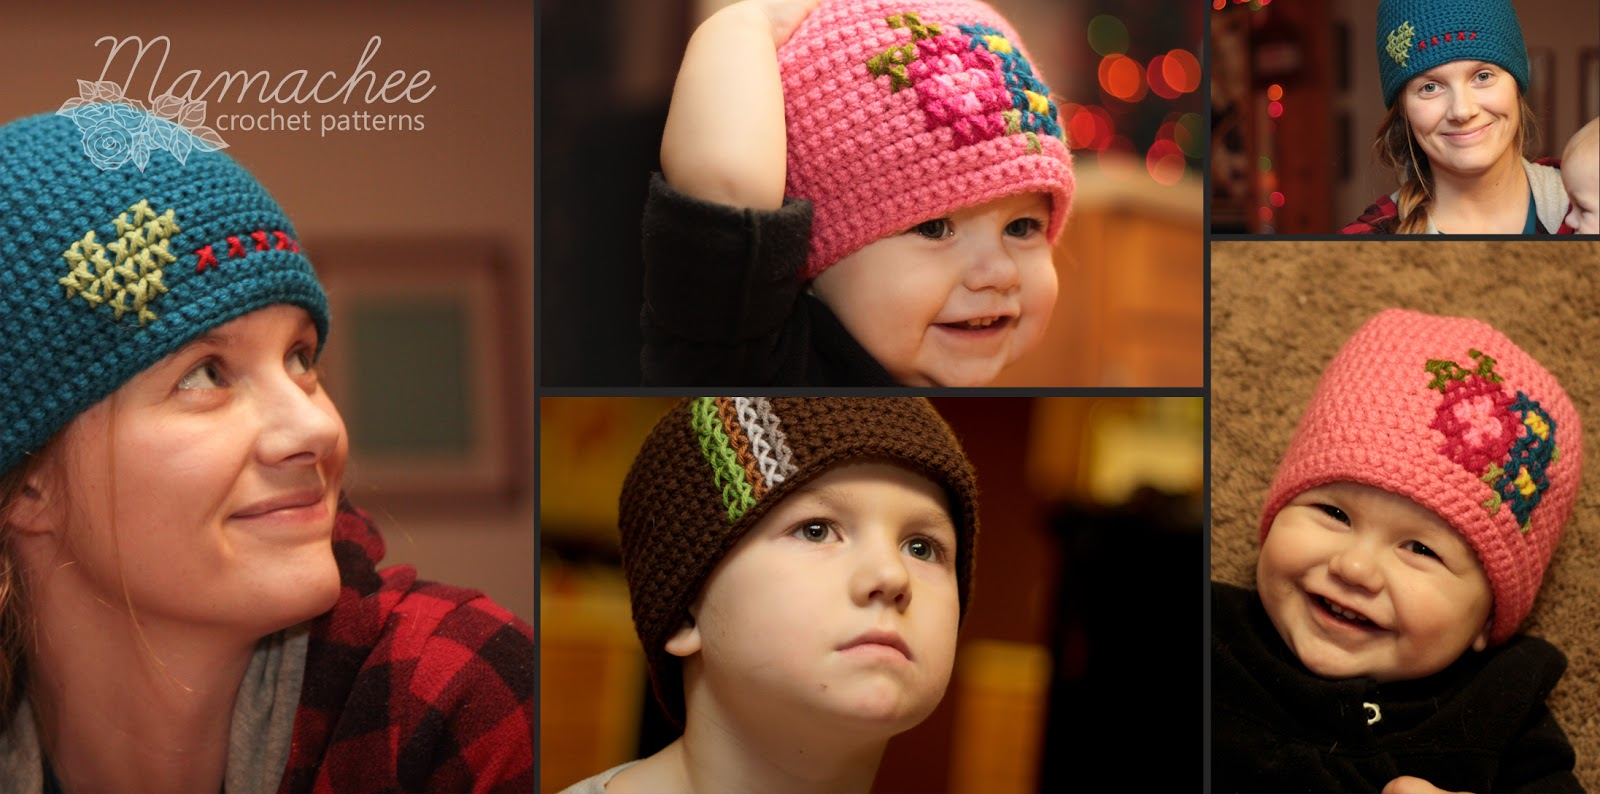 Free Crochet Pattern – Cross Stitch Hat | mamachee